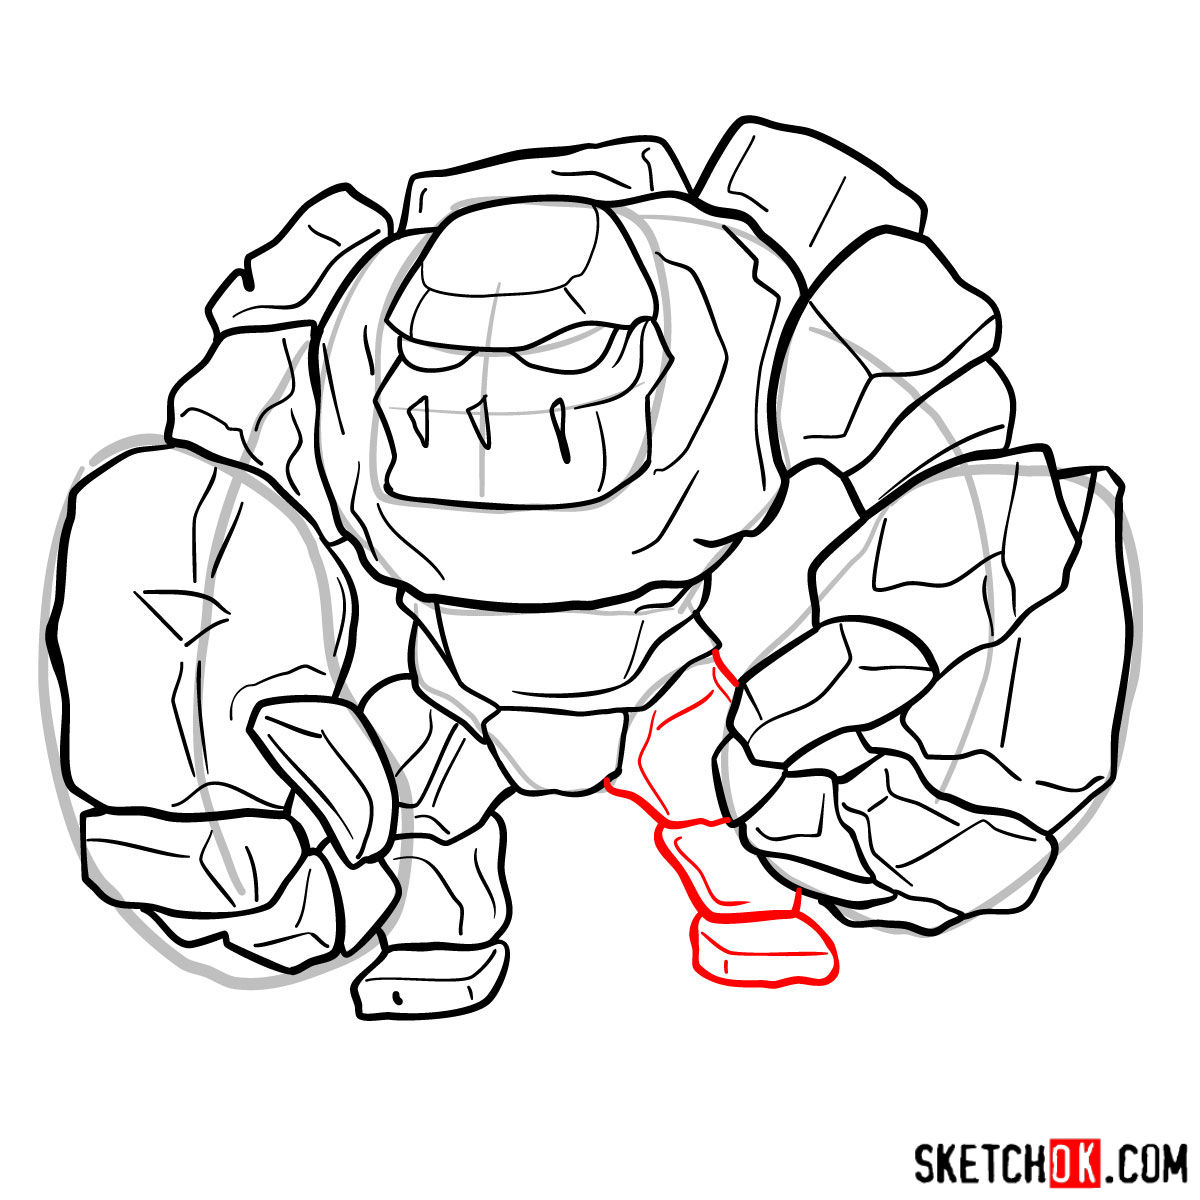 How to draw Golem (Golemite) from Clash of Clans - step 10